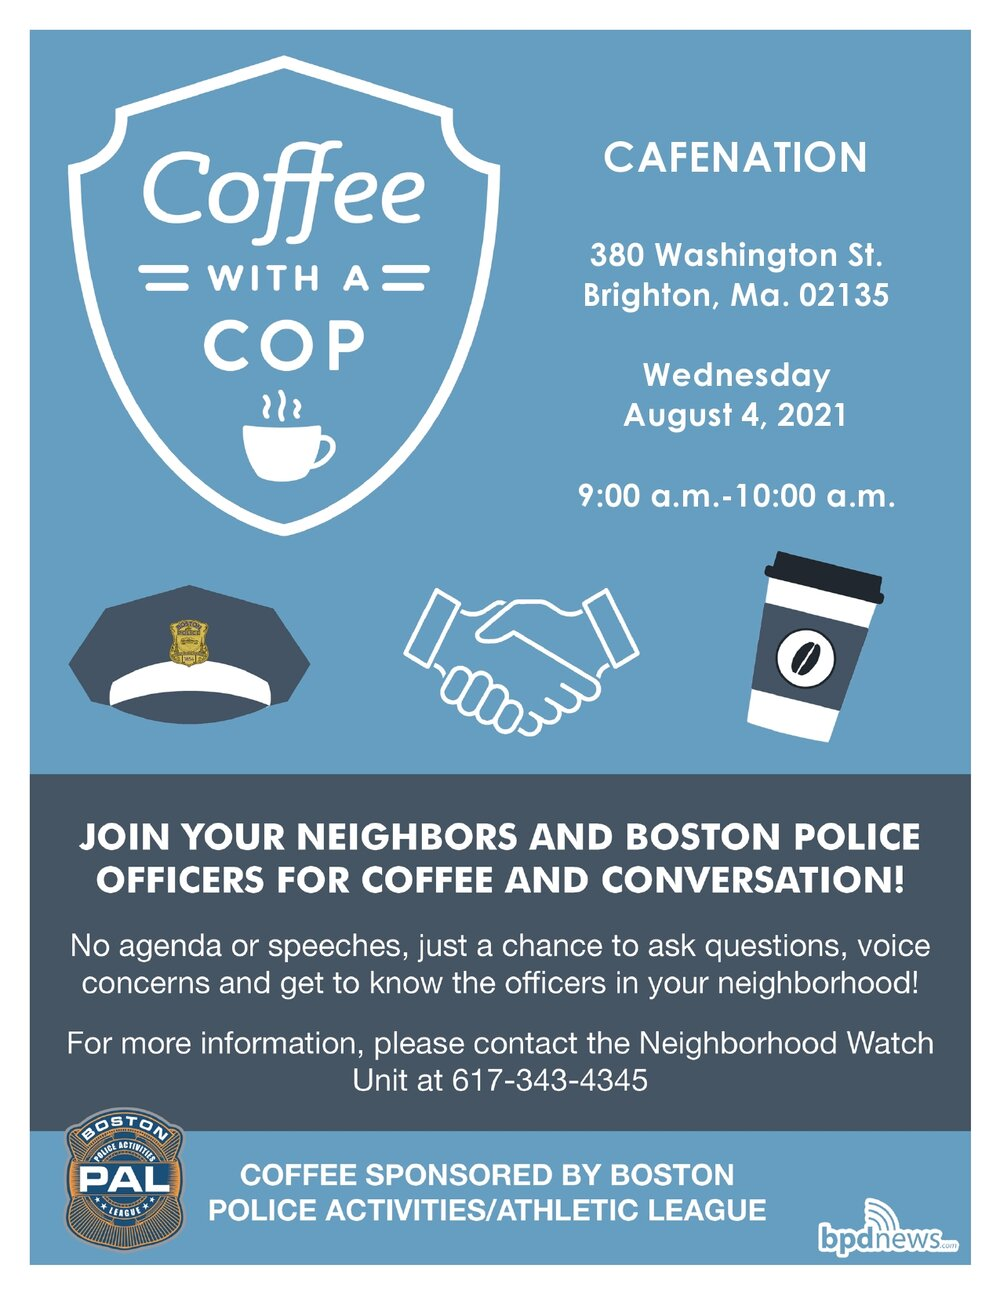 Coffee with a Cop: Please Join us on Wednesday, August 4, 2021 at Cafenation located at 380 Washington Street in Brighton